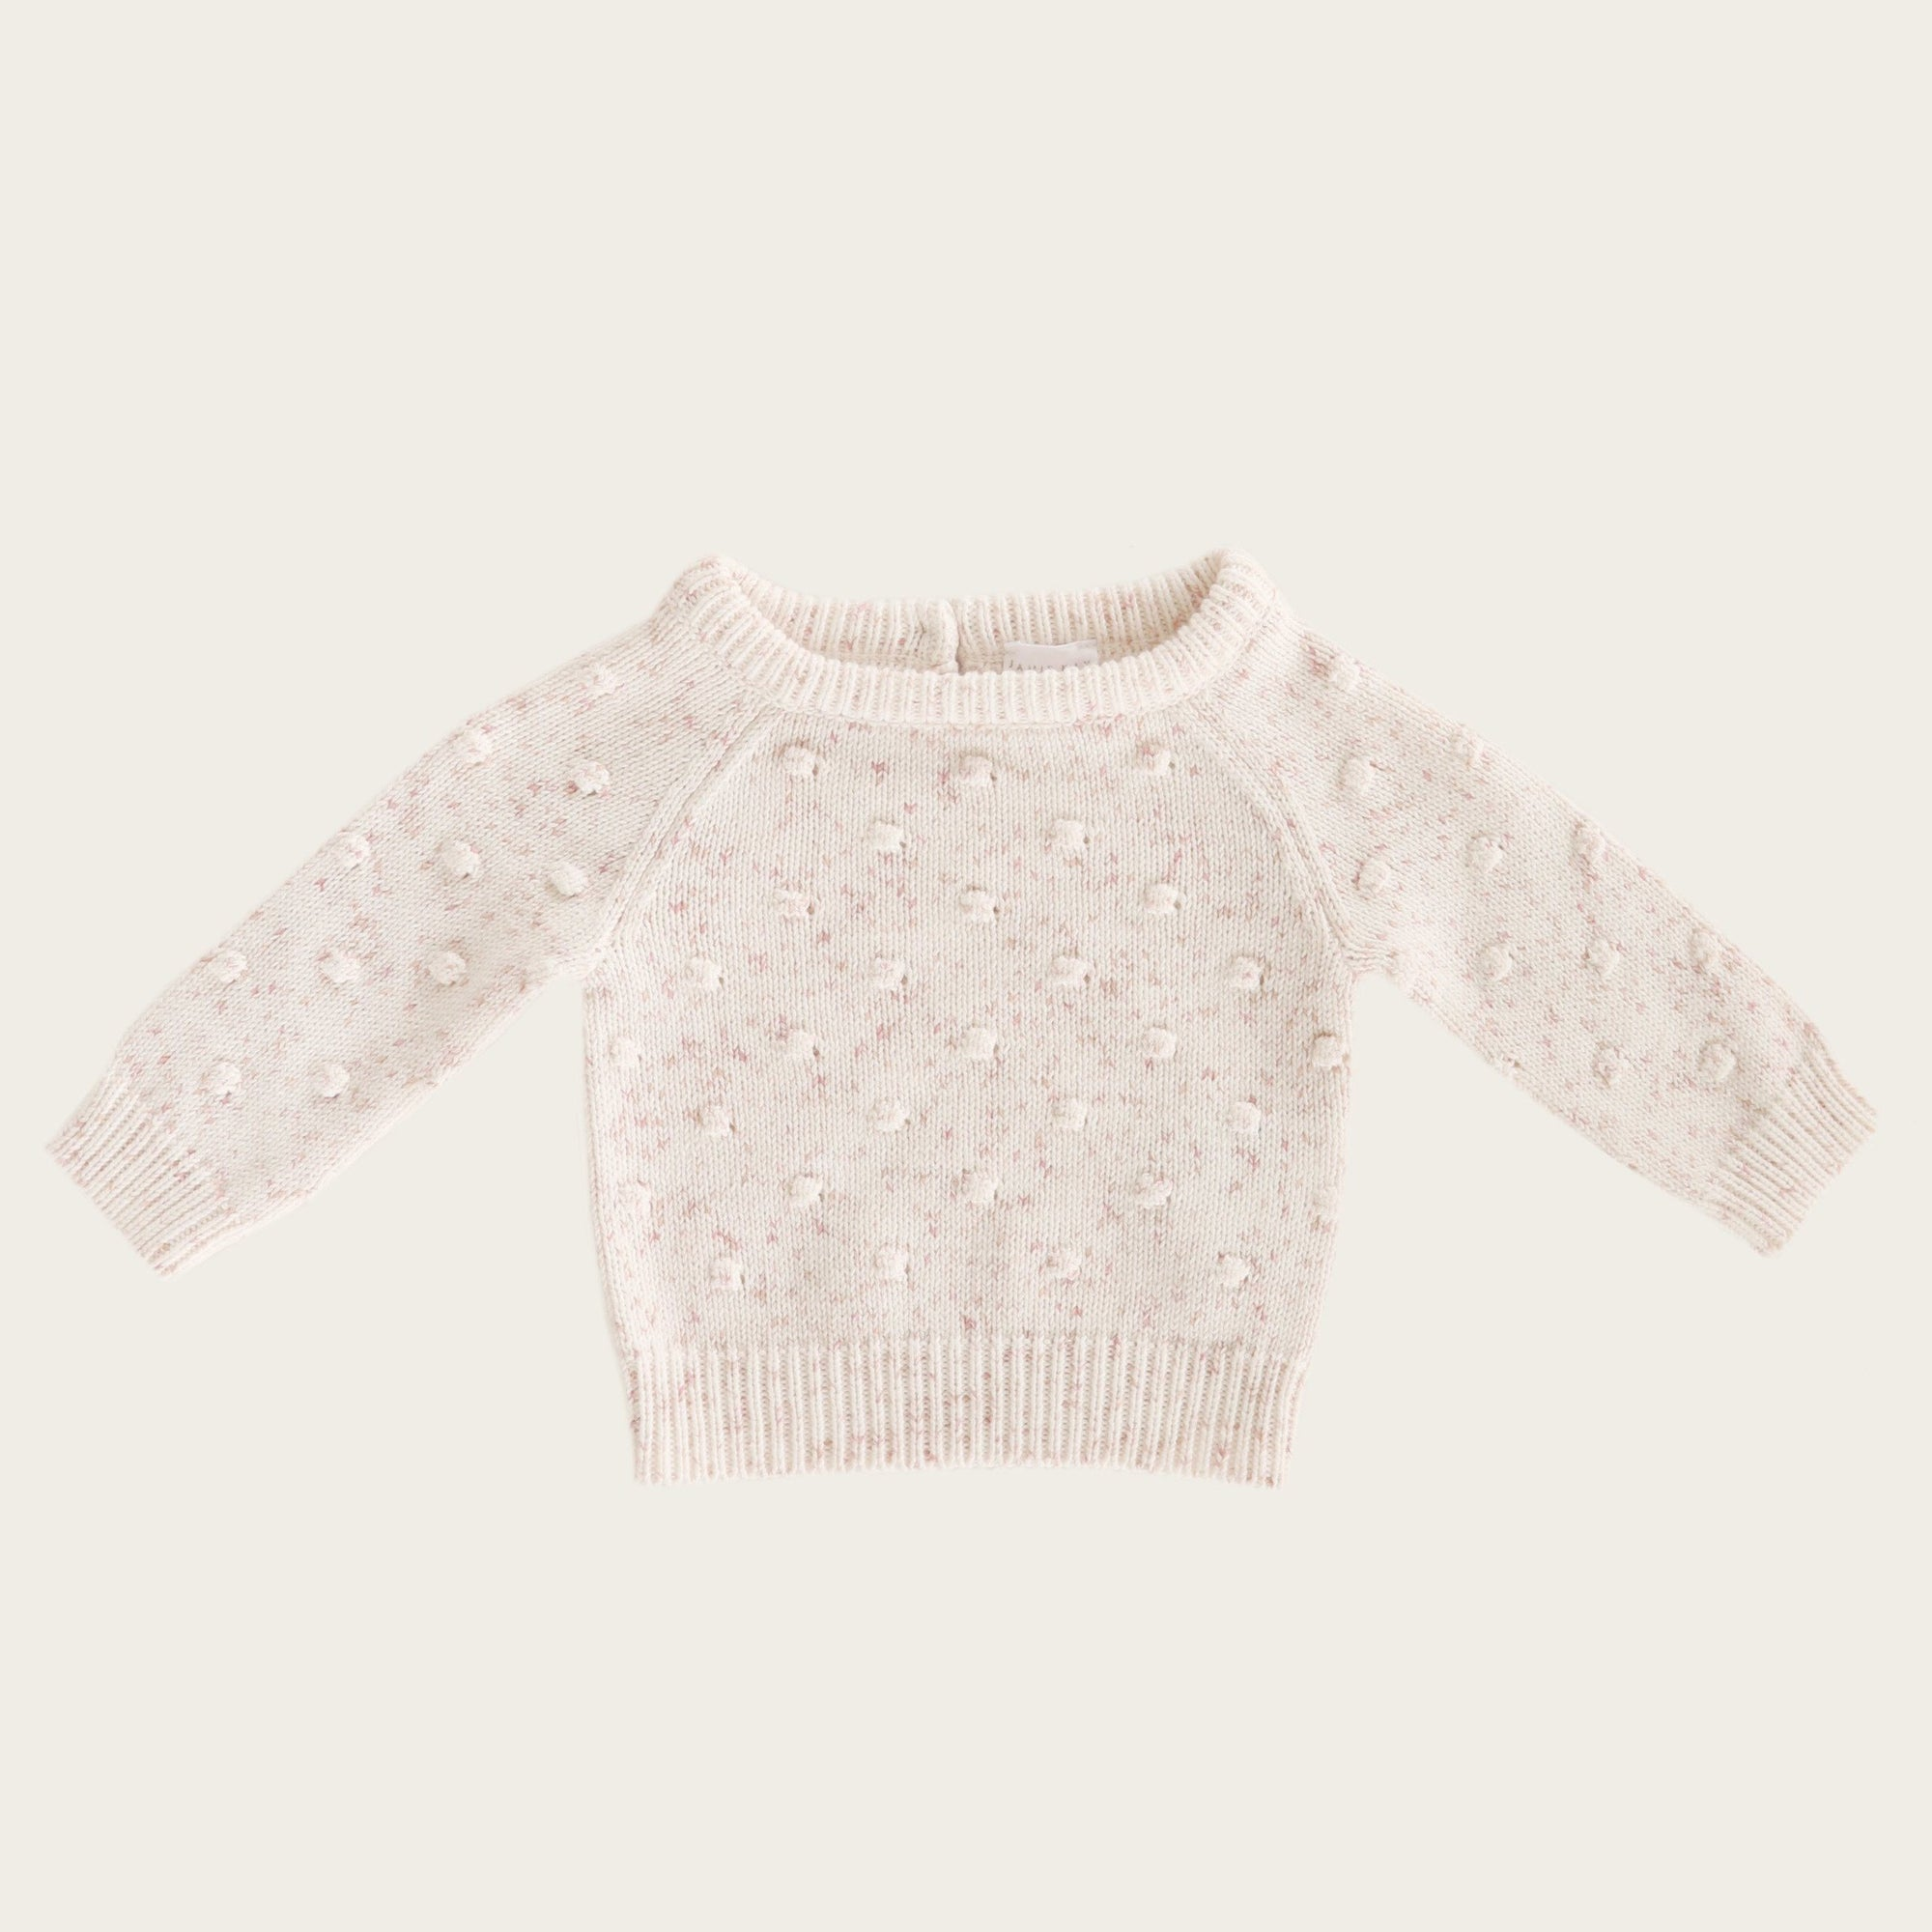 Dotty Knit (Sprinkles)